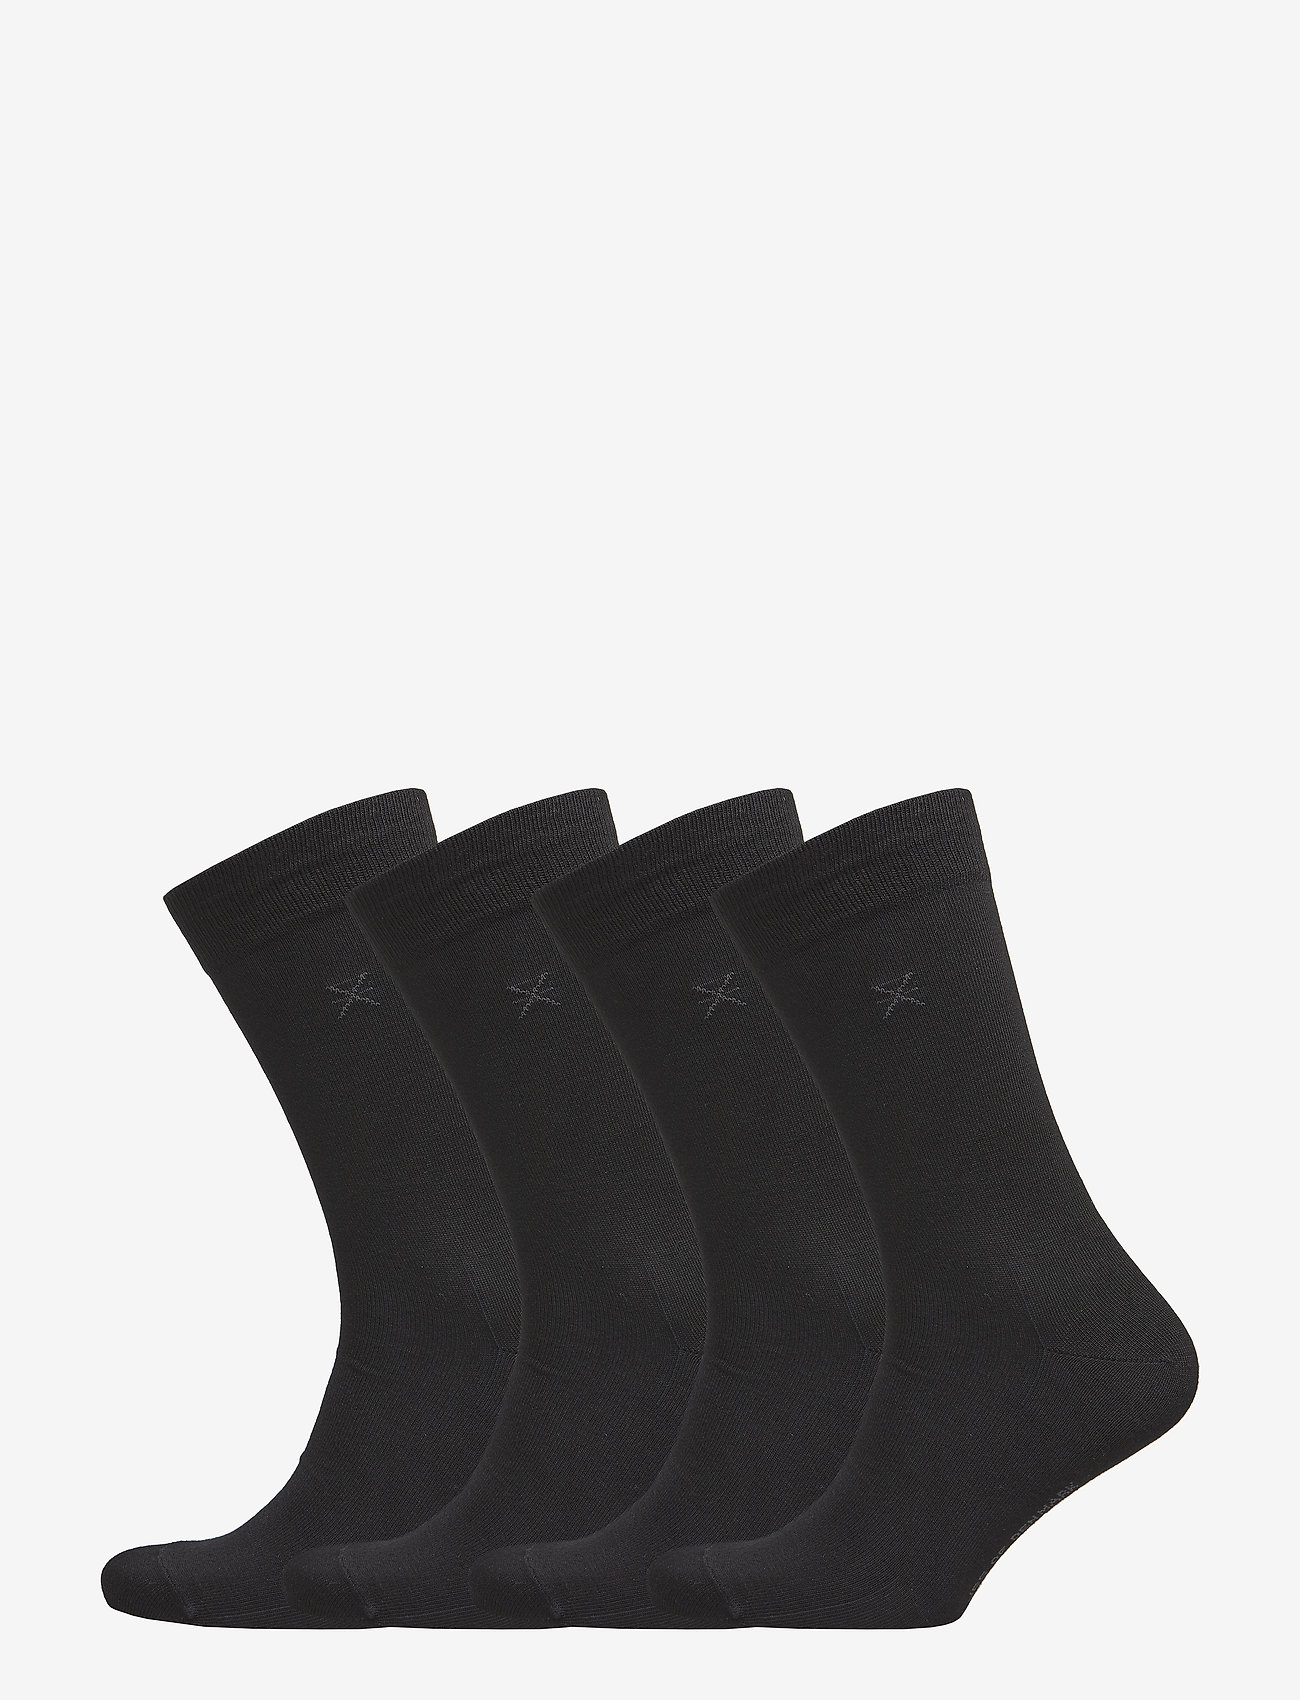 JBS of Denmark - JBS of dk socks bamboo 4-pack - regular socks - black